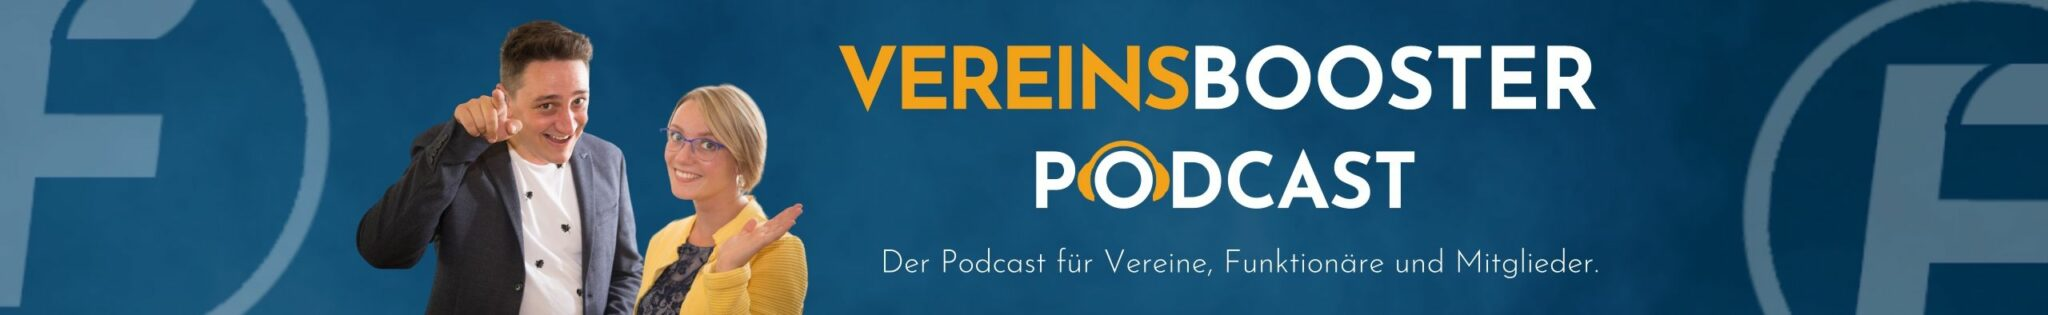 Vereinsbooster Podcast